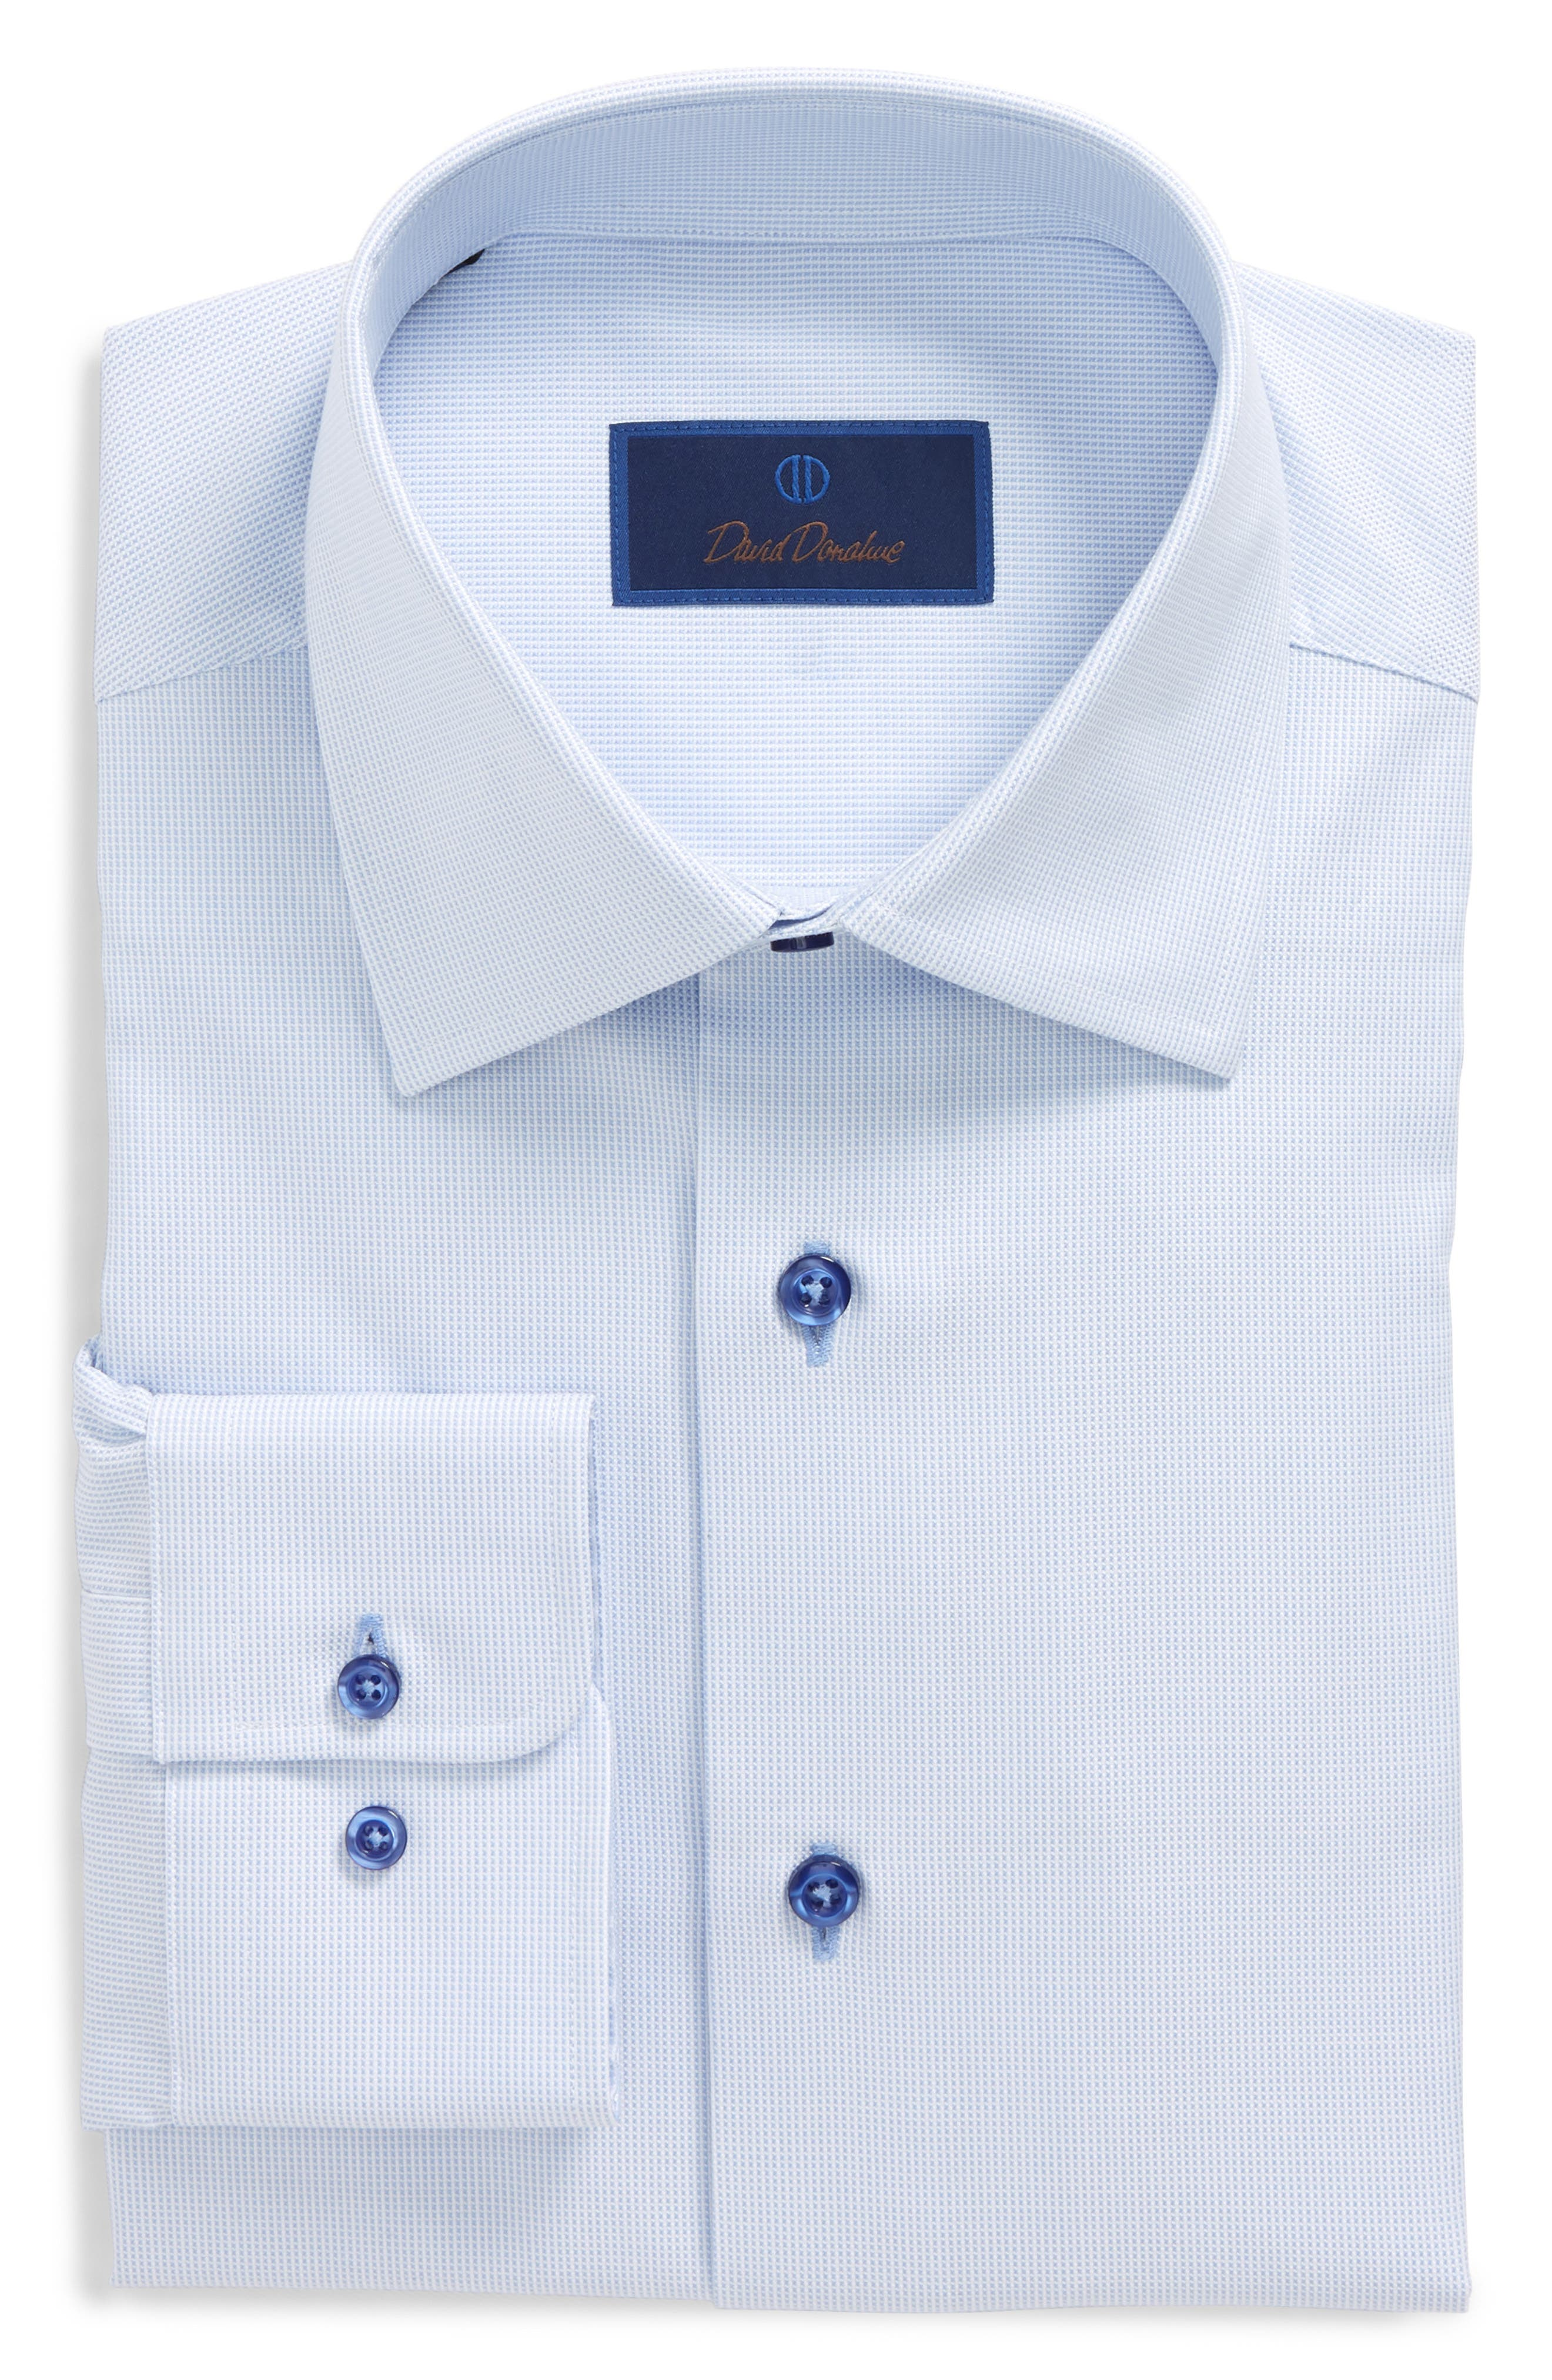 Regular Fit Solid Dress Shirt,                         Main,                         color, 423